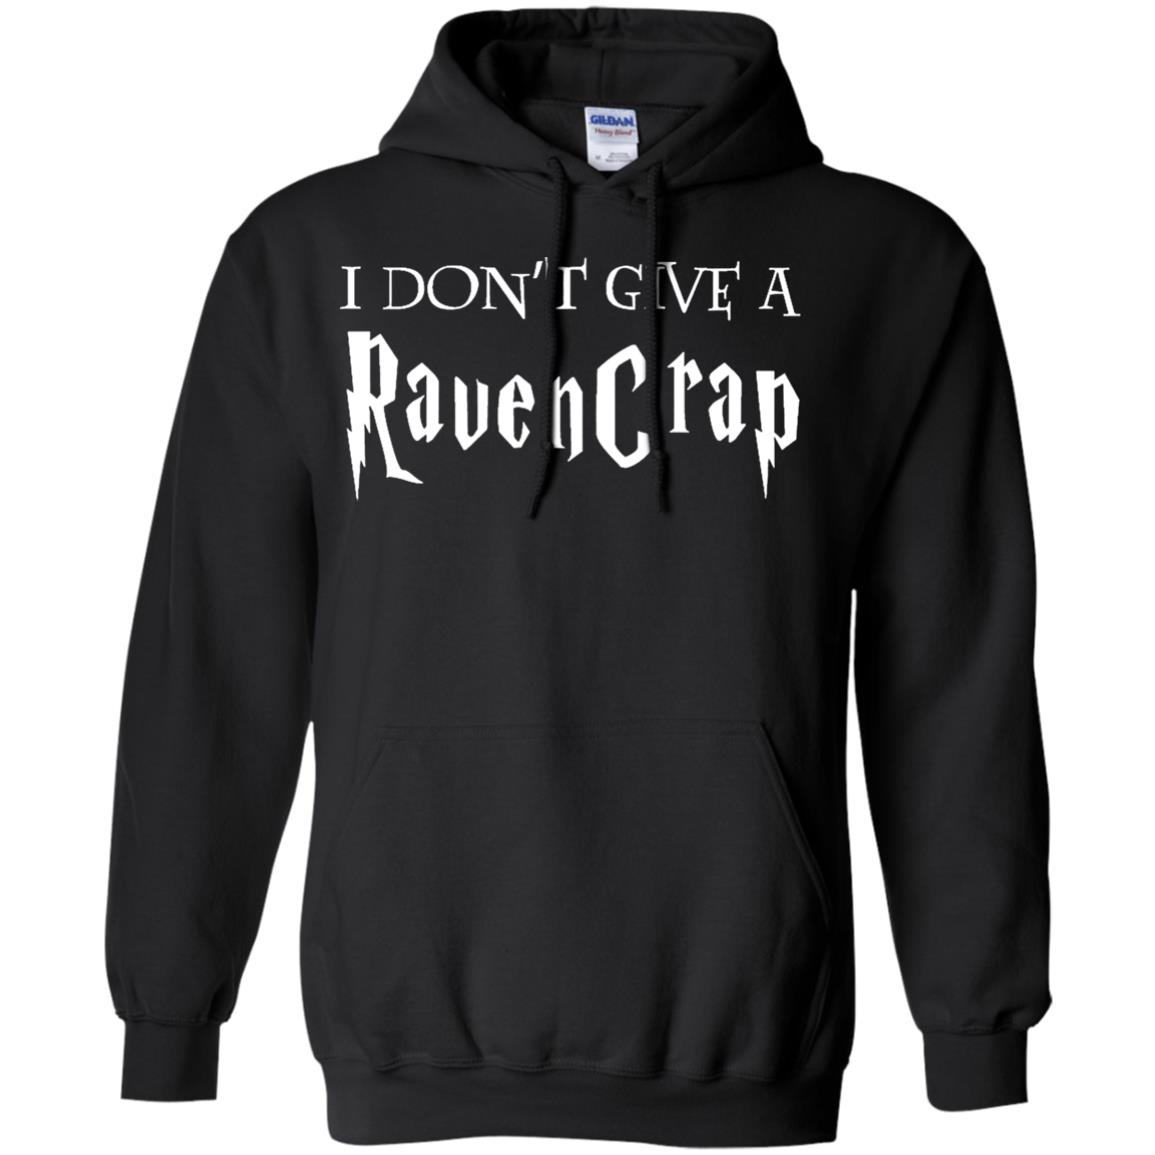 image 690 - Harry Potter: I don't give a Ravencrap shirt & sweater